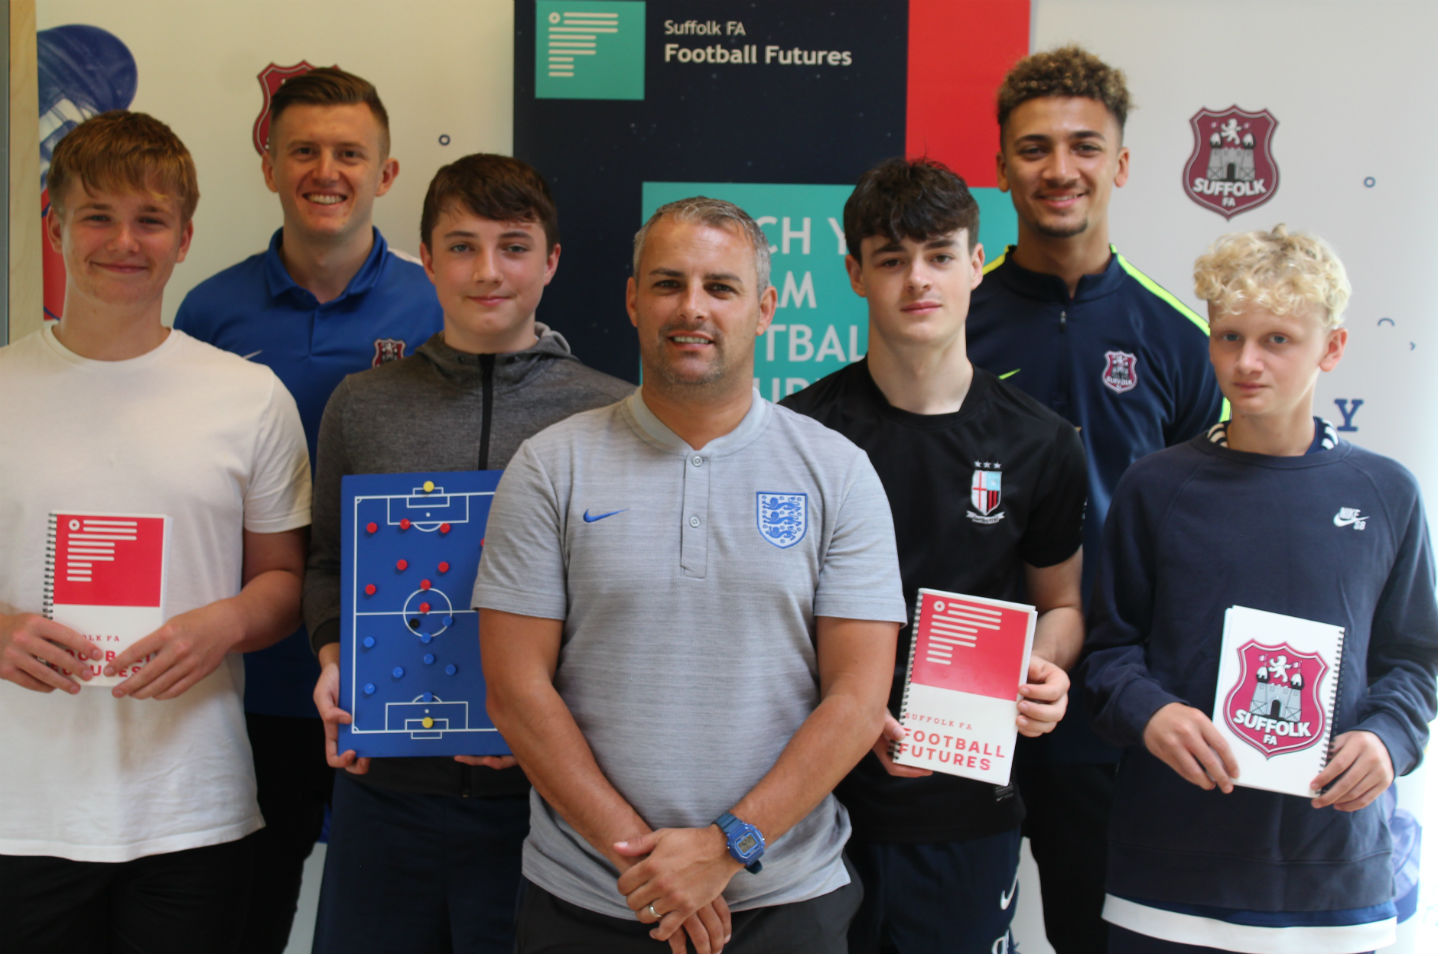 b6031b698 Football Futures stage first event - Suffolk FA